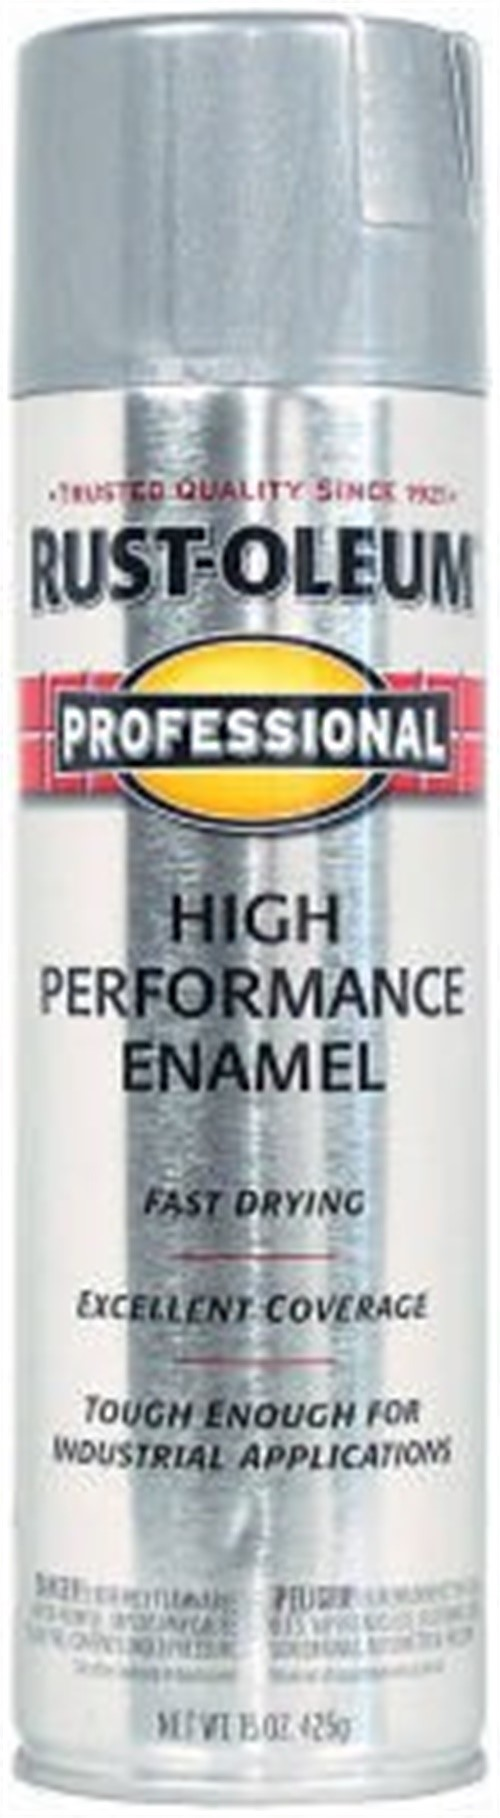 Rust-Oleum Professional High Performance Enamel Spray